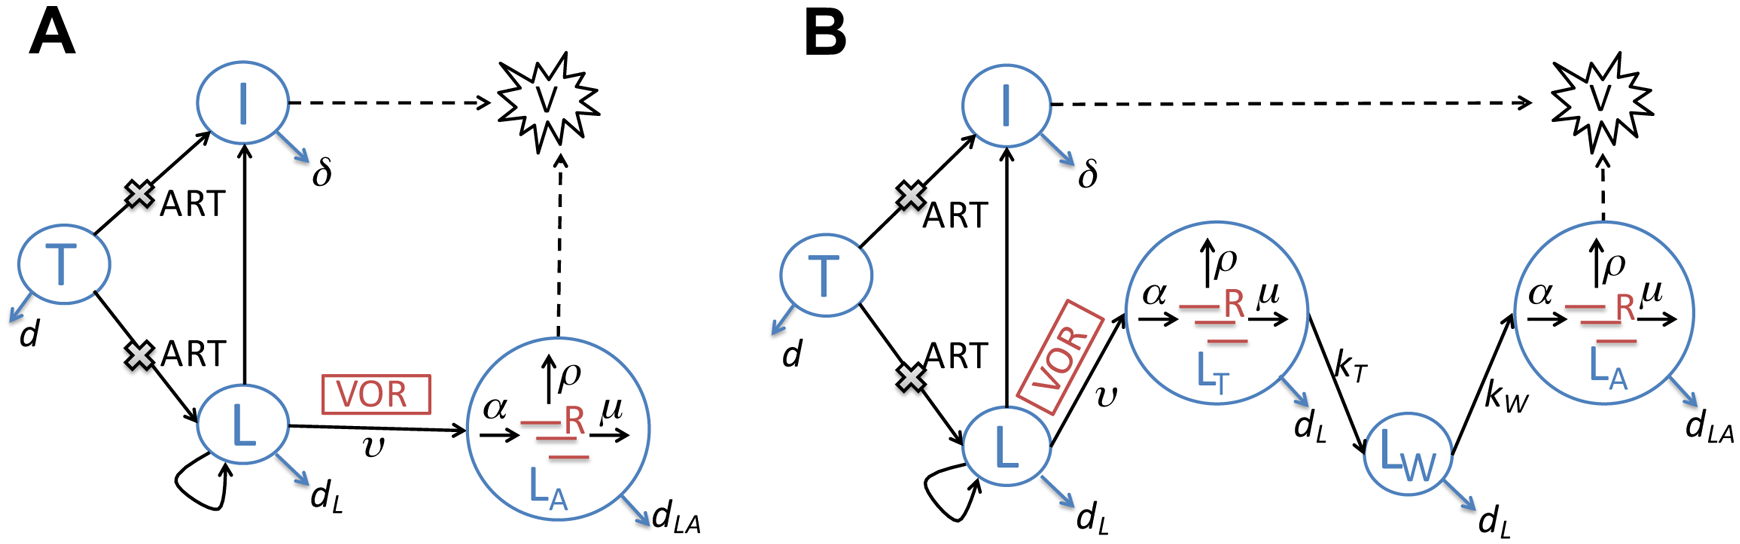 Schematic illustrations of two latency models that describe the impact of vorinostat treatment.